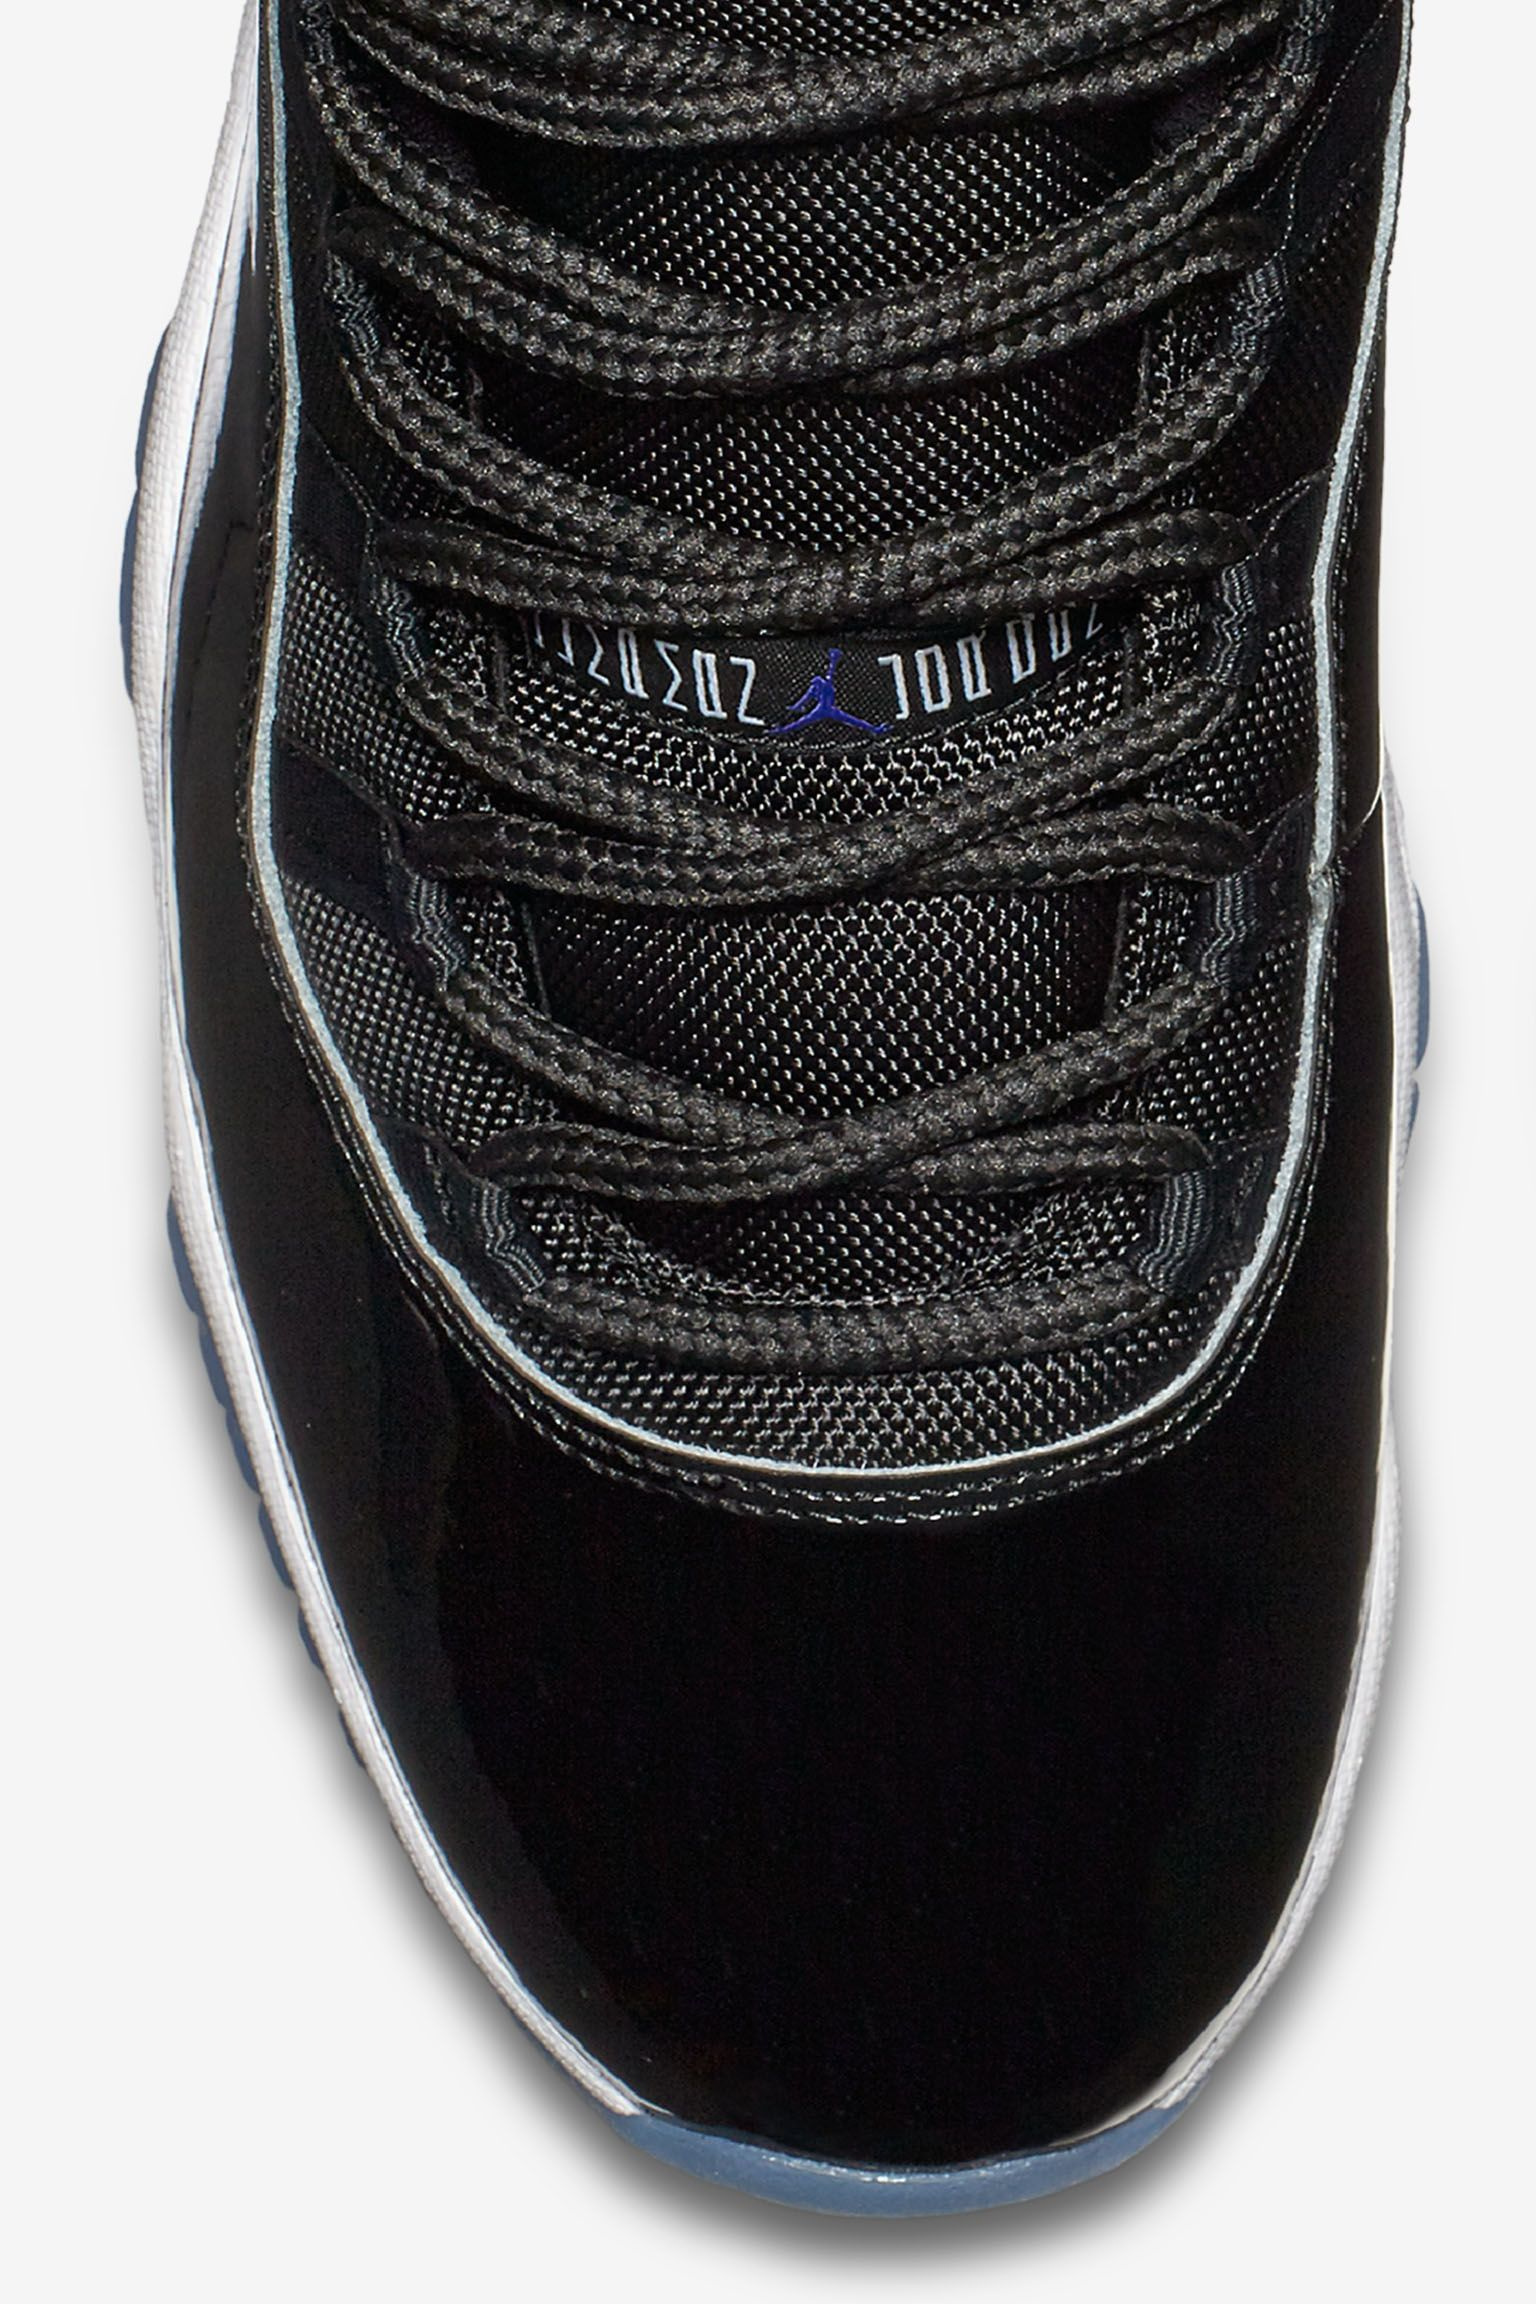 Air Jordan 11 Retro 'Black & Concord-White' Release Date.